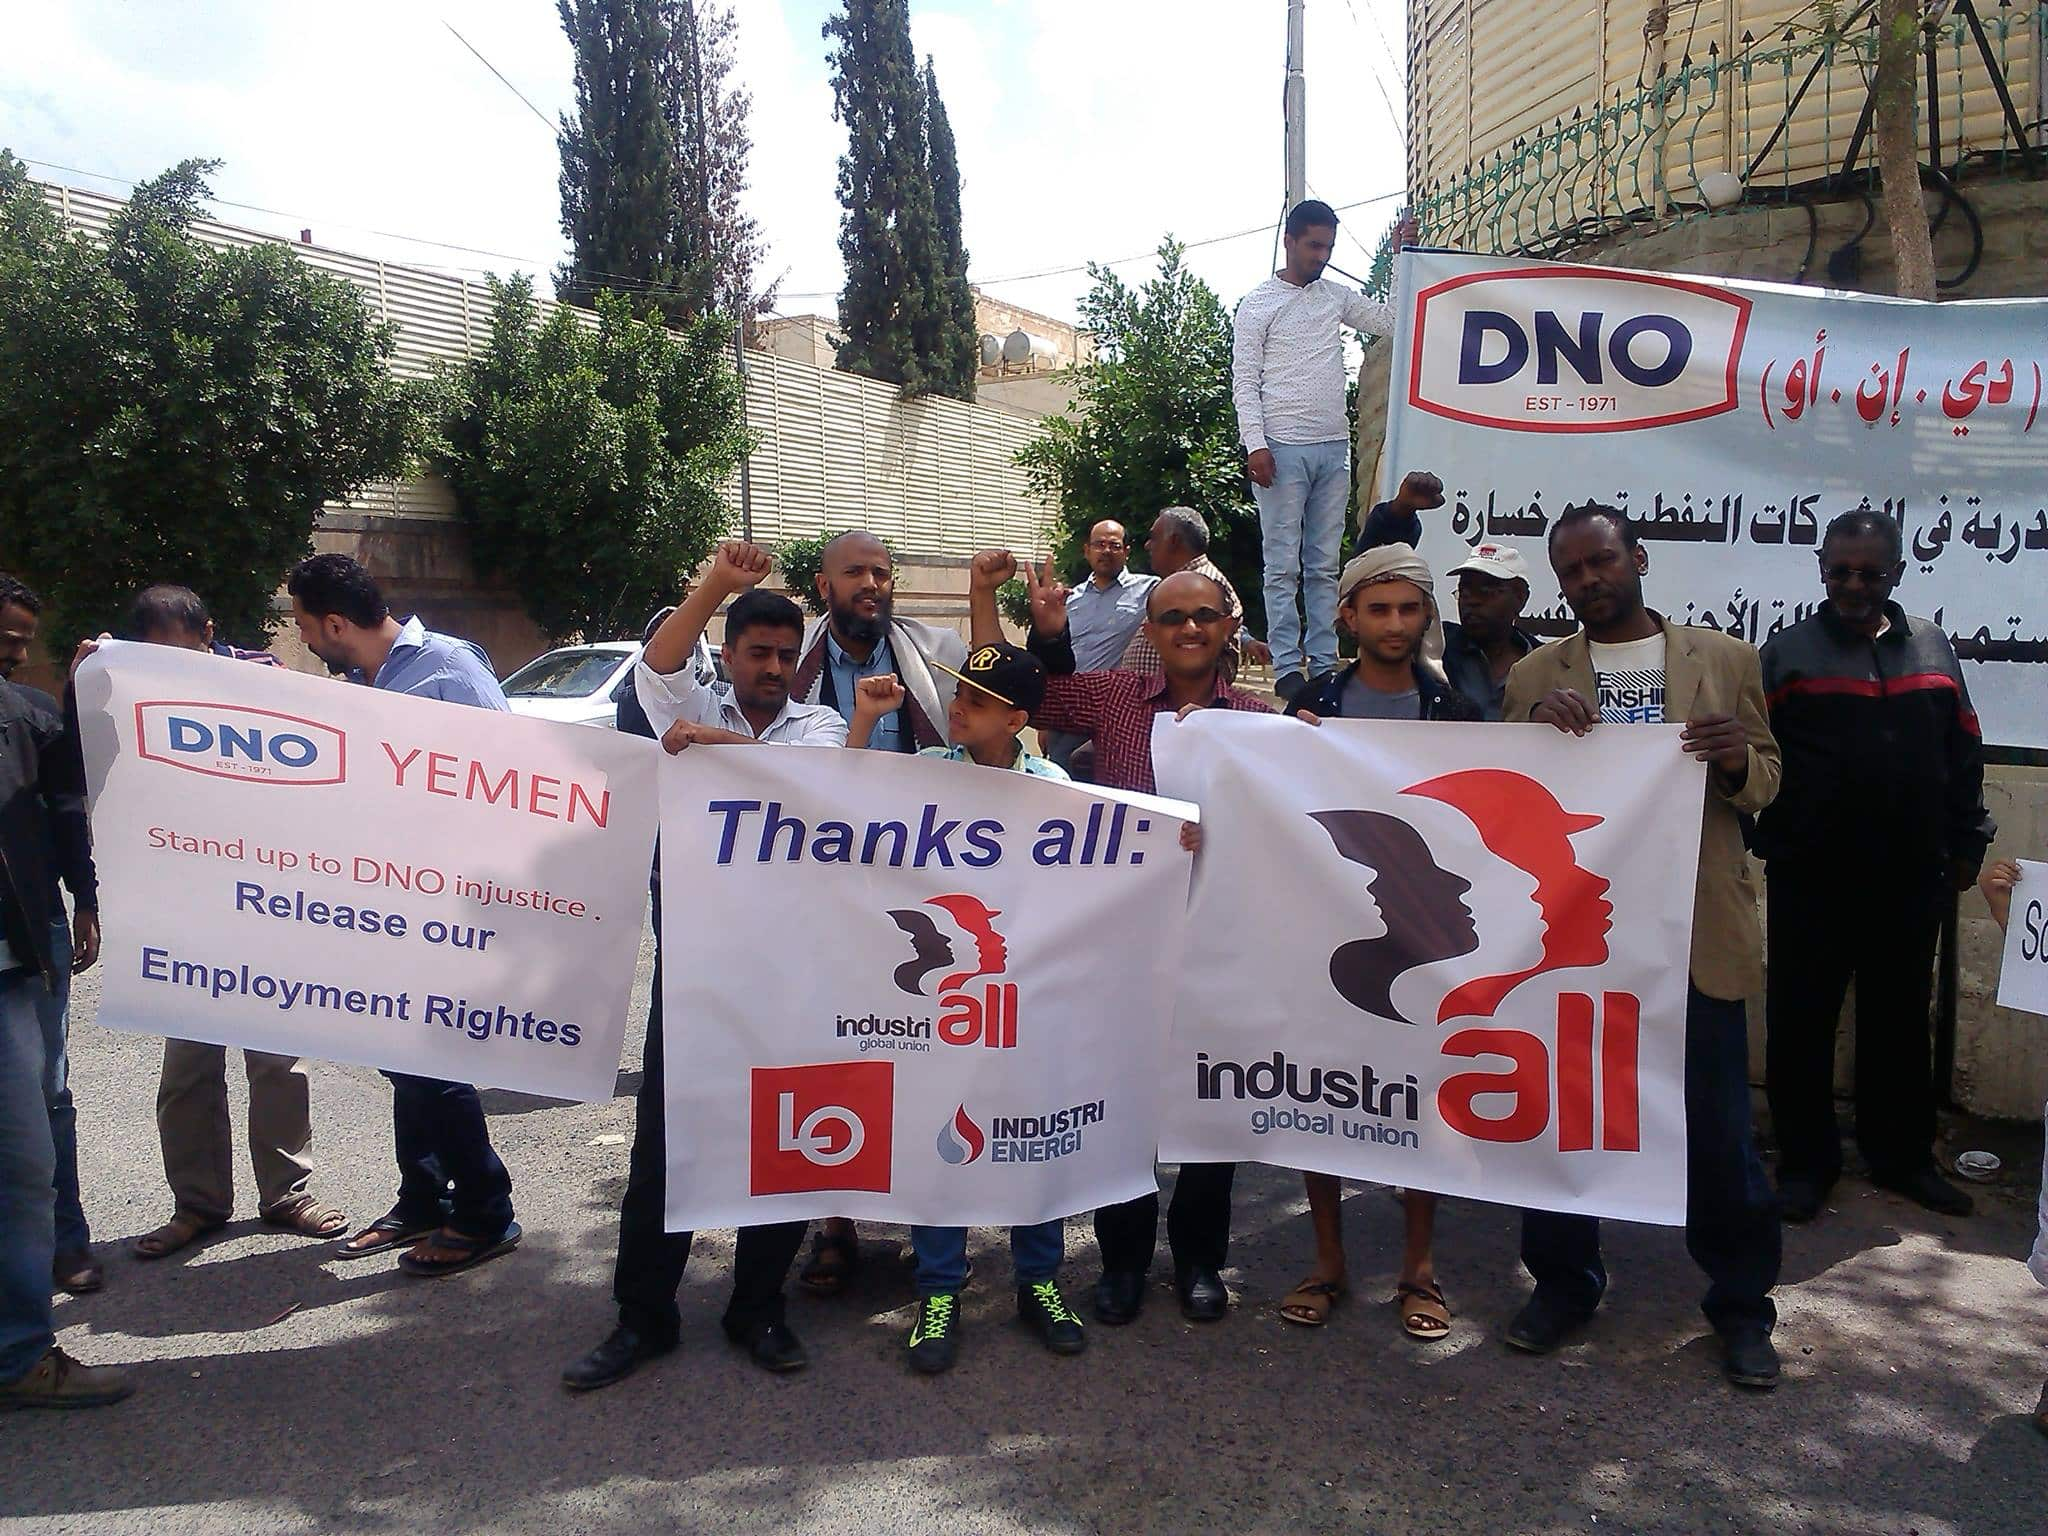 Yemen: DNO fails to respect Supreme Court ruling